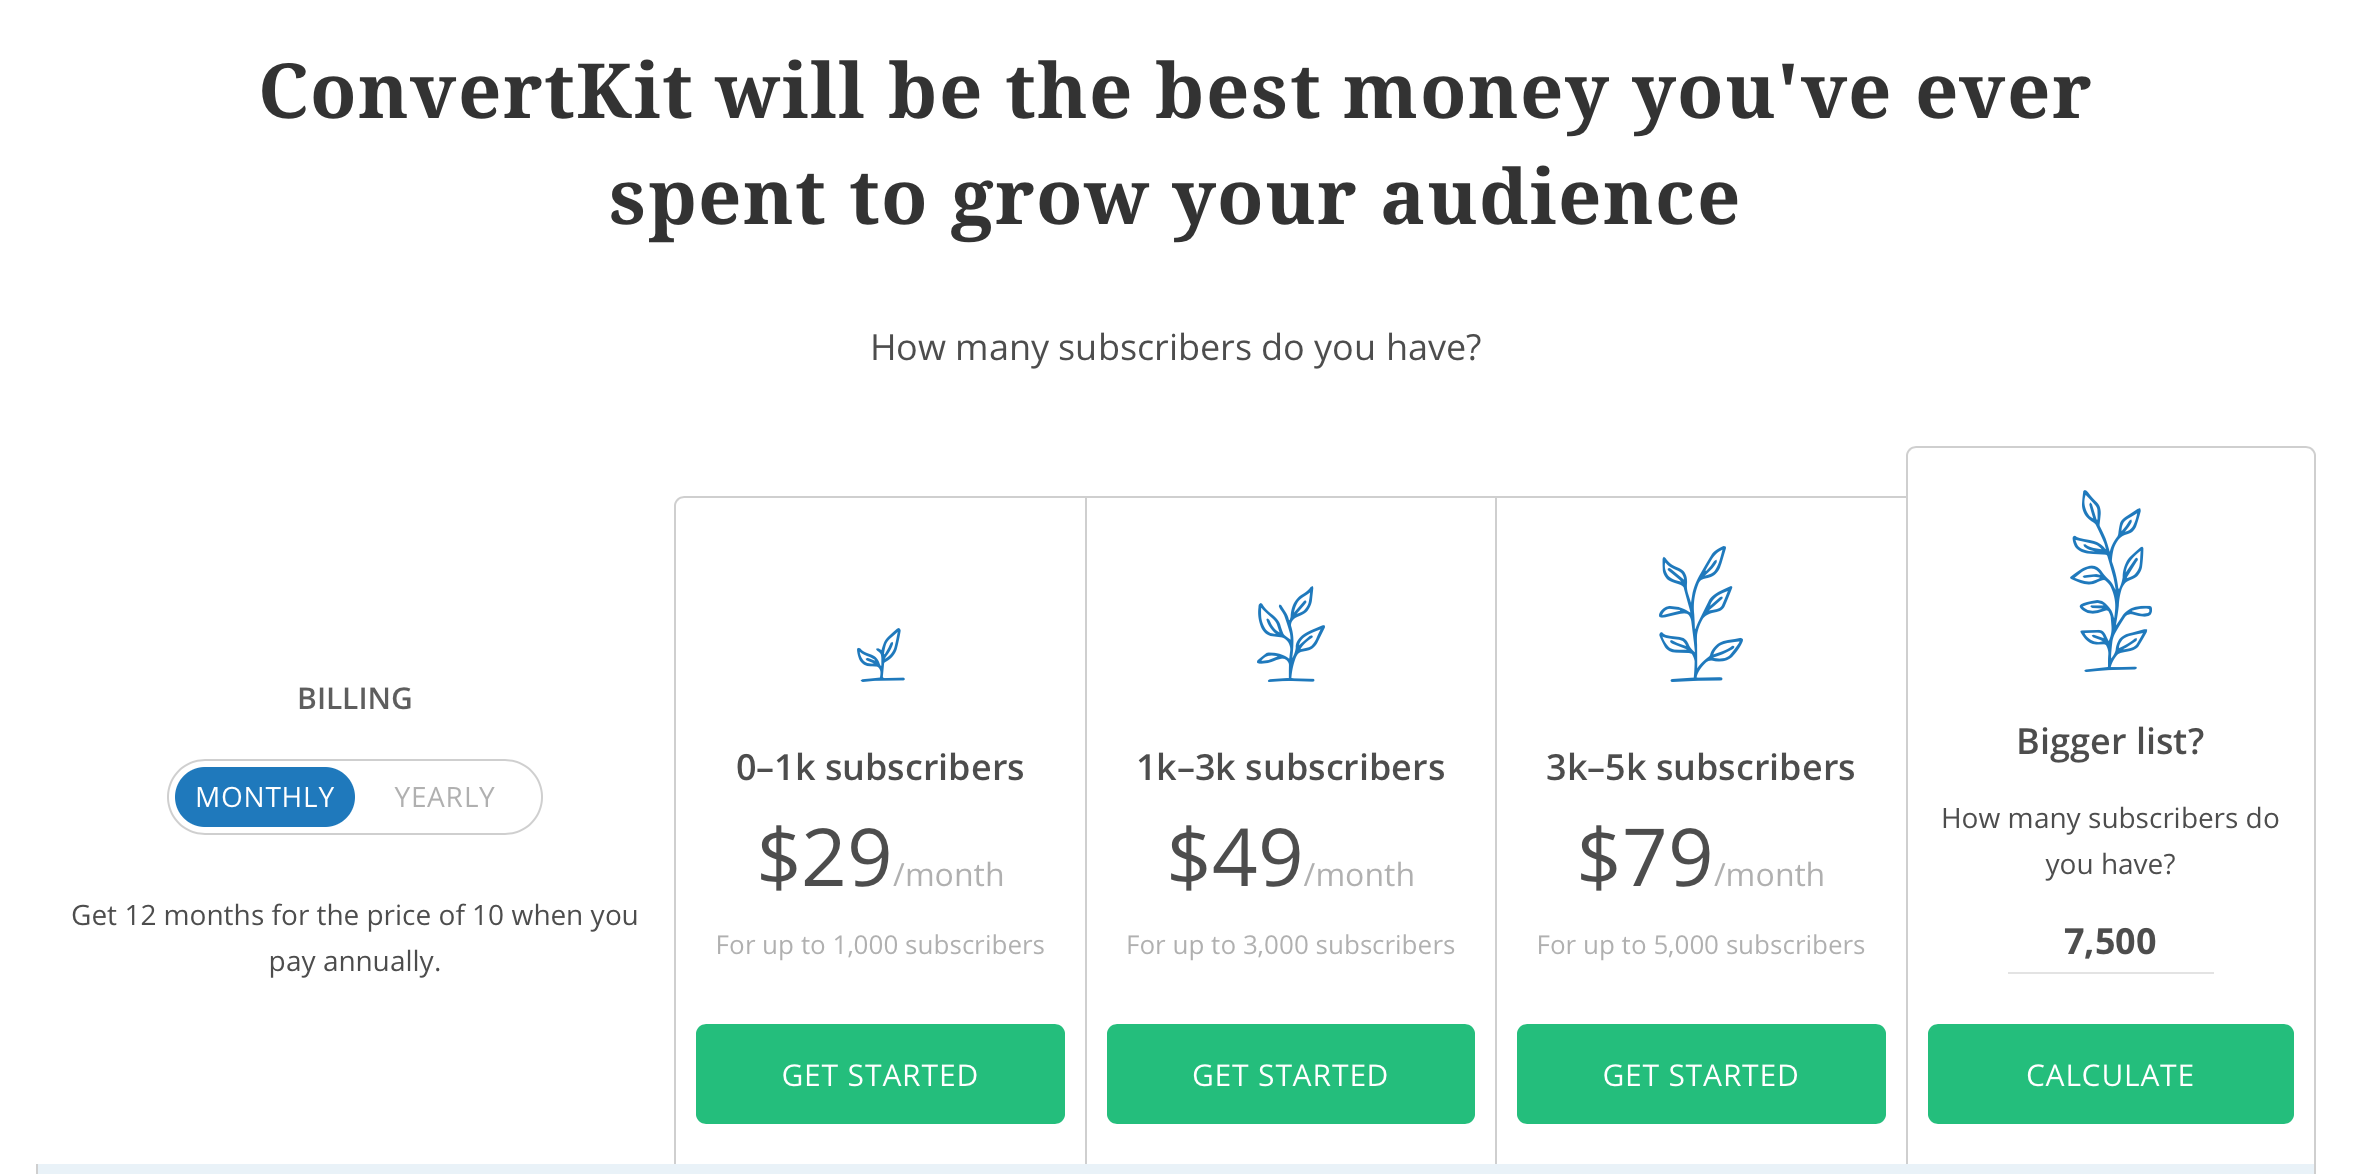 ConvertKit pricing chart for paying monthly. You can save money by paying annually, though!